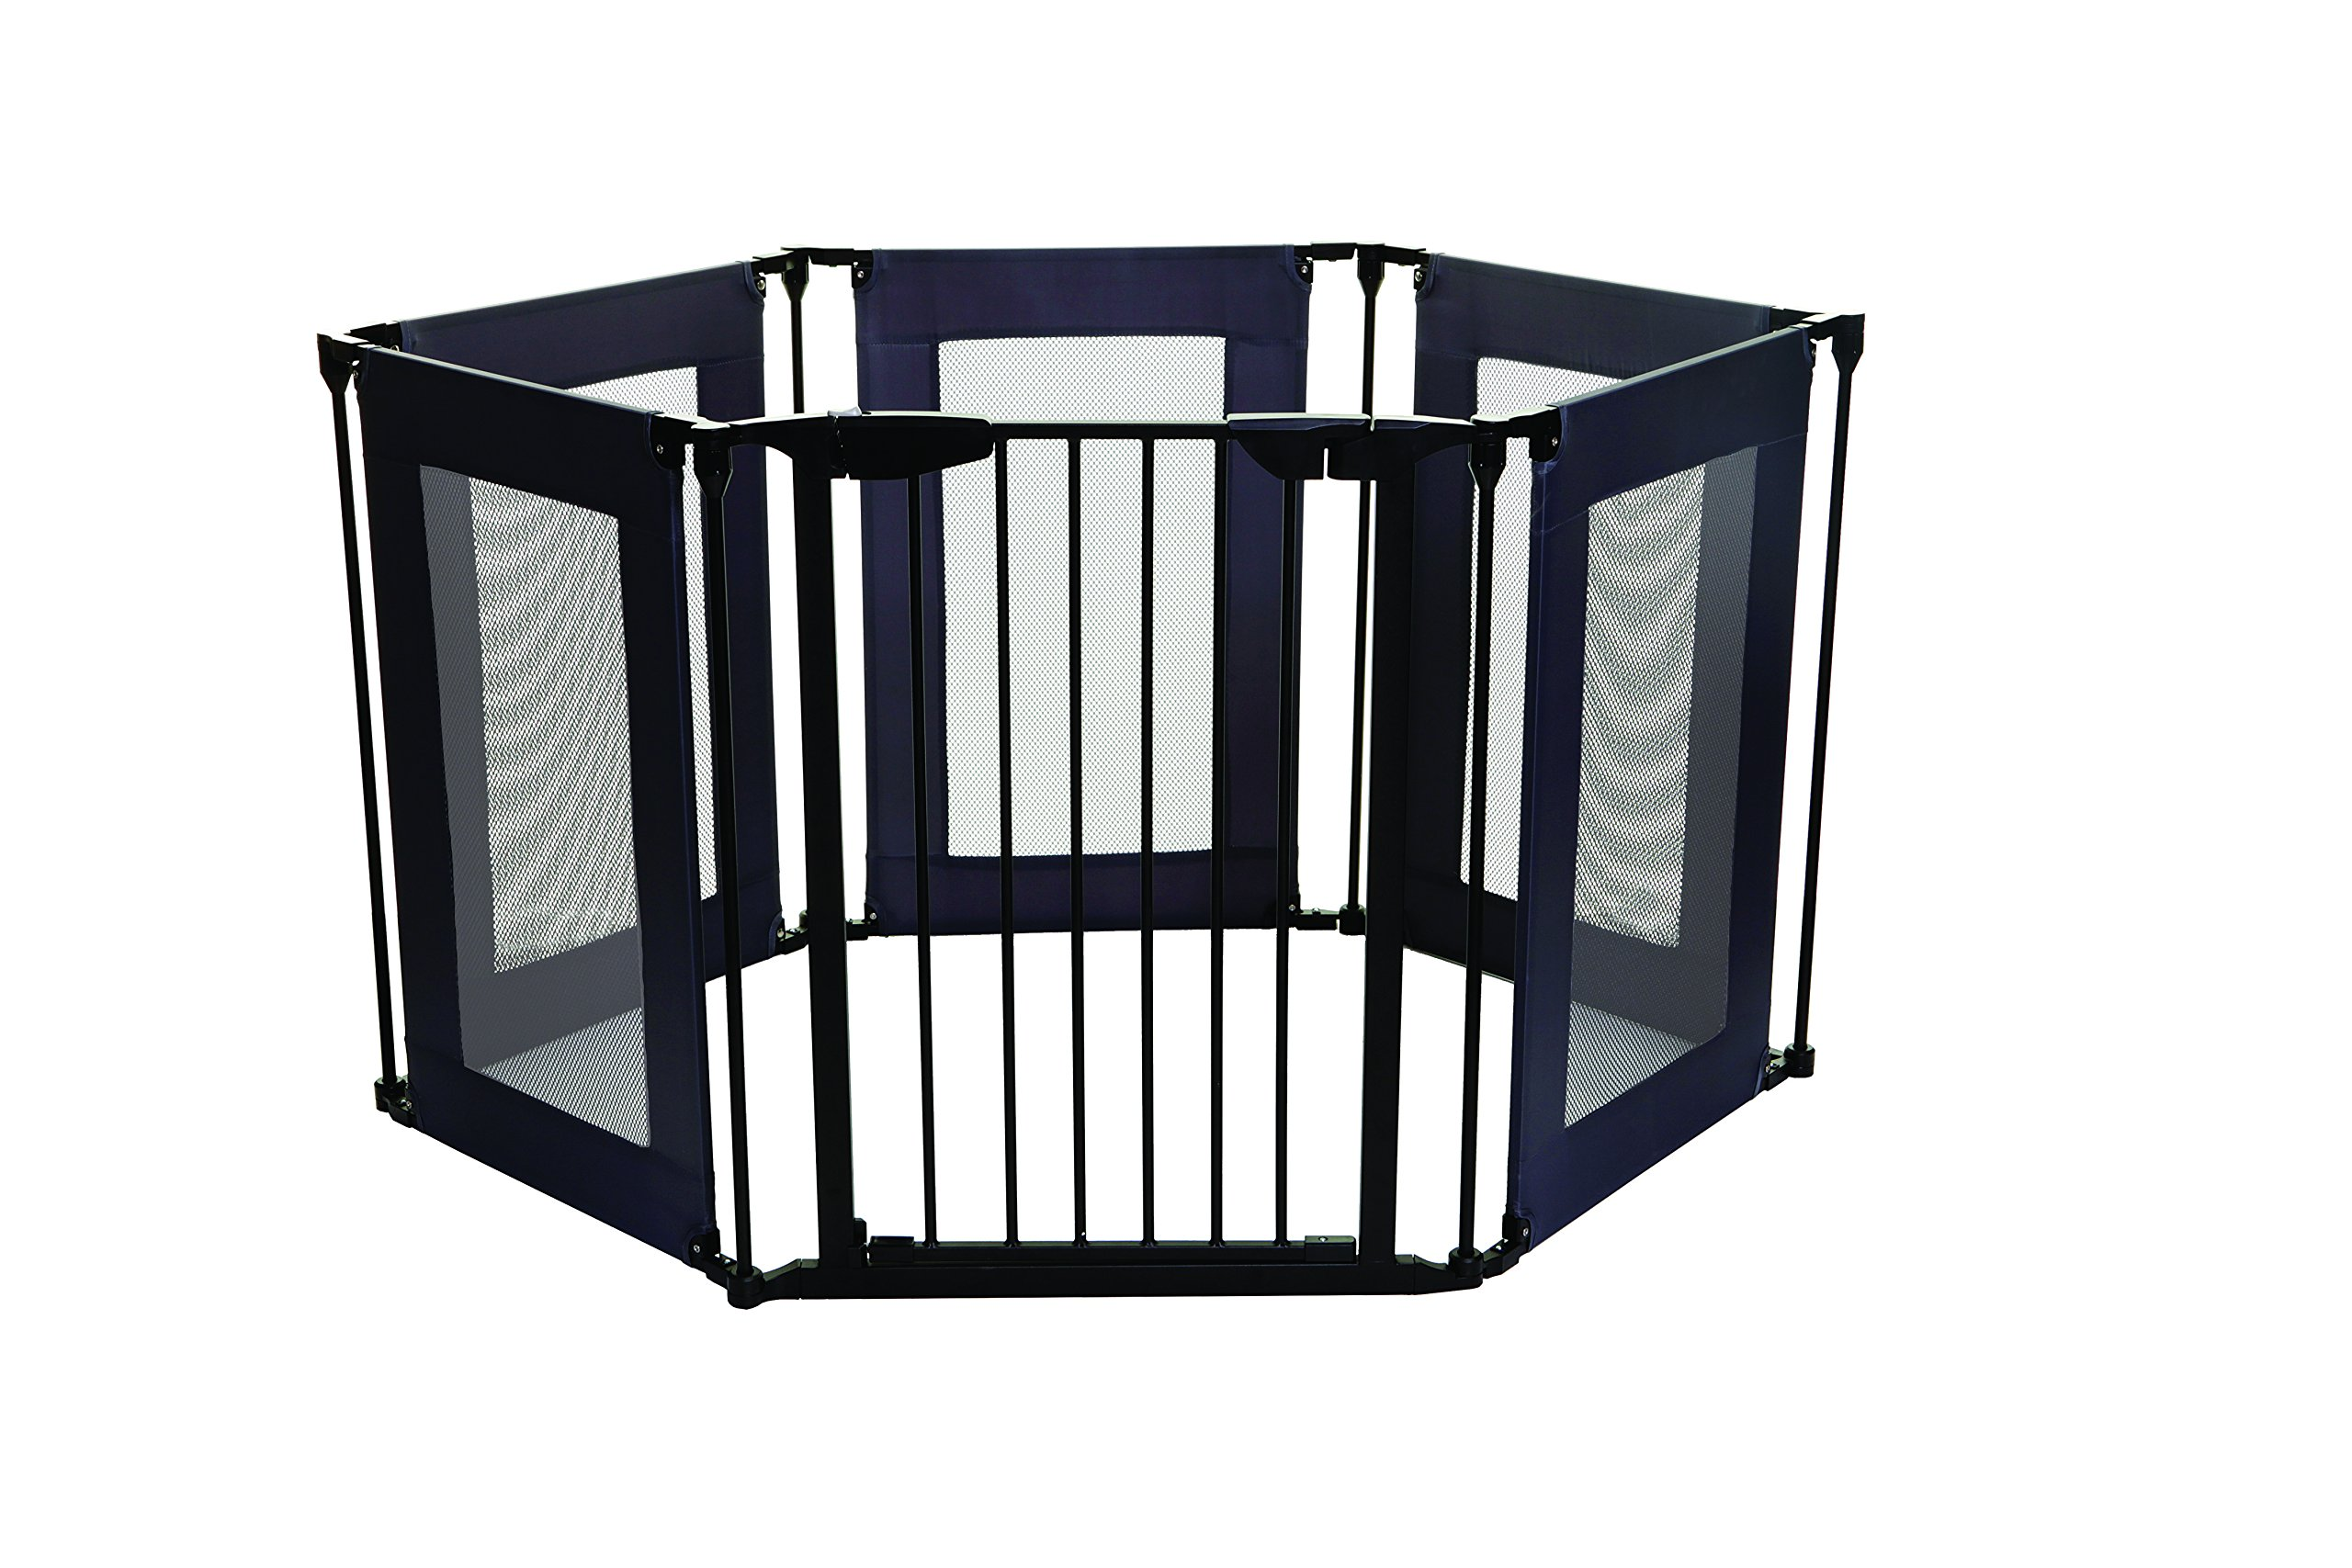 Dreambaby Brooklyn 3-in-1 Converta Dreambaby 6 modular panels including covenient walk-through gate Arrange panels to your specific layout Can be used as either a play-pen or extra-wide barrier gate 1